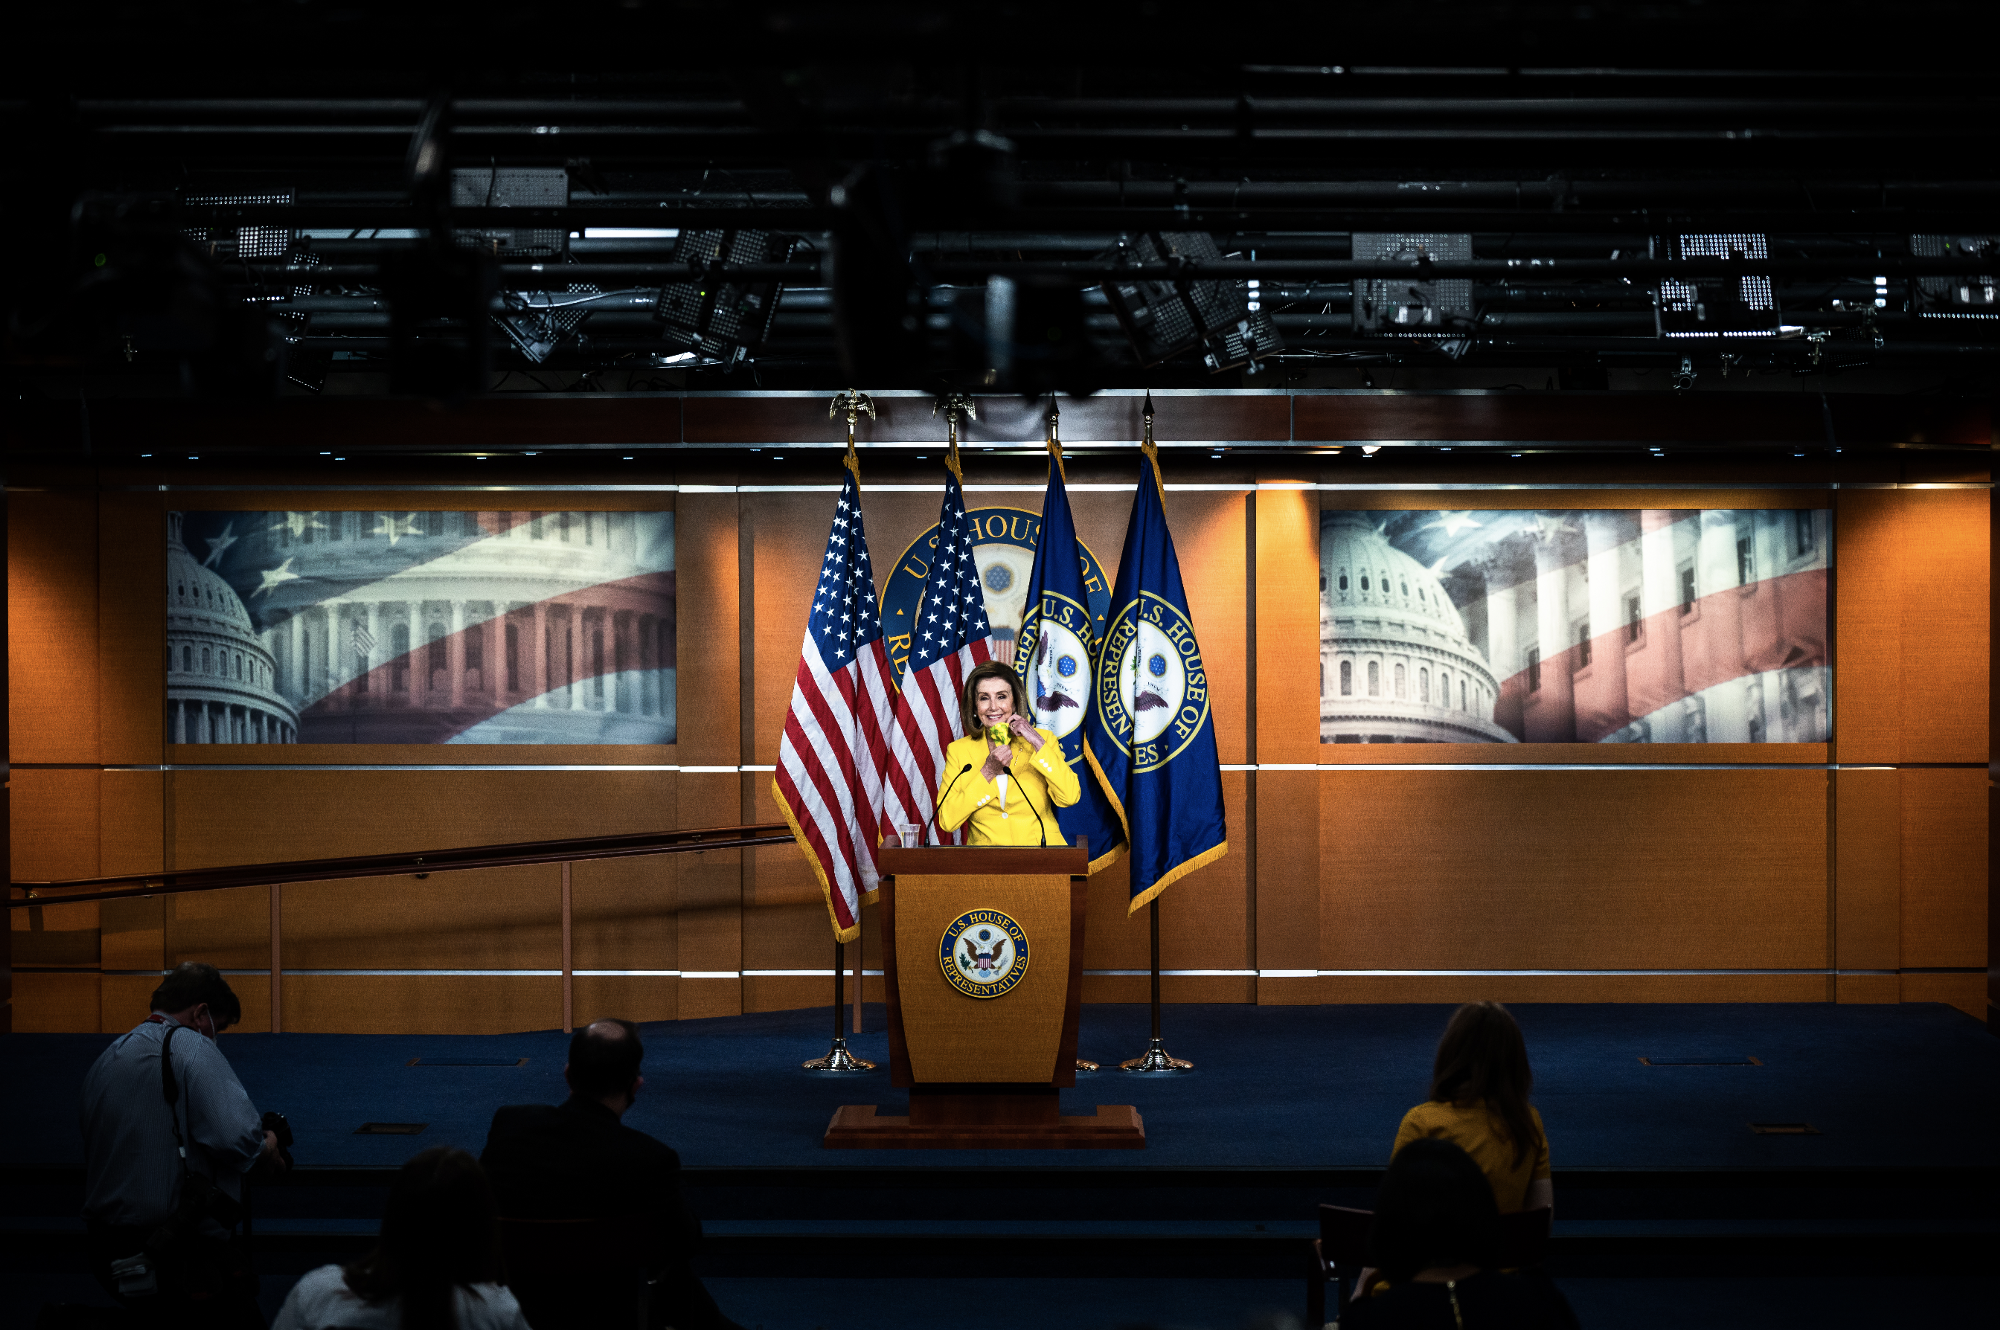 Behind-the-scenes photos of the week April 25—May 1, 2021. United States Capitol, Washington, DC